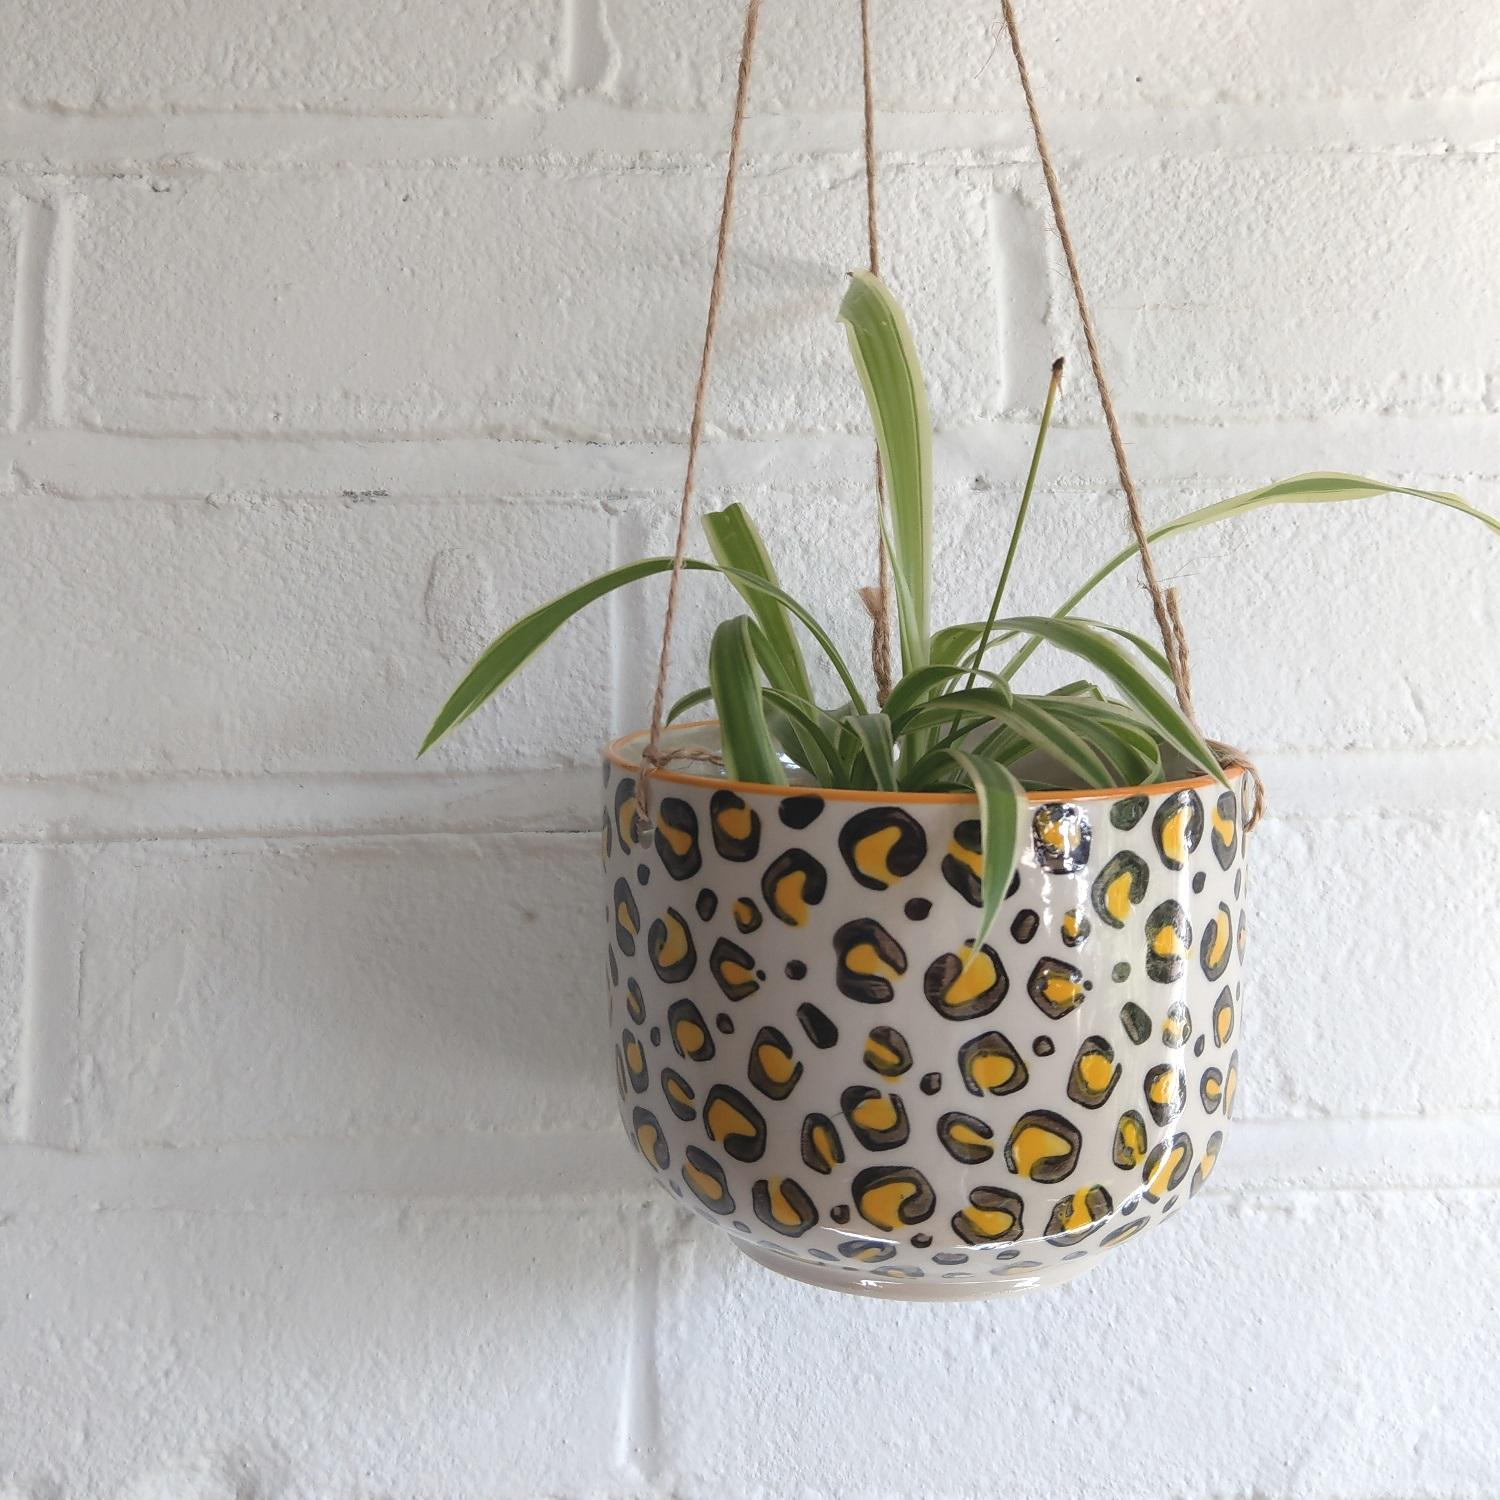 Sass & Belle Leopard Print Loves Hanging Plant Pot at Albert & Moo